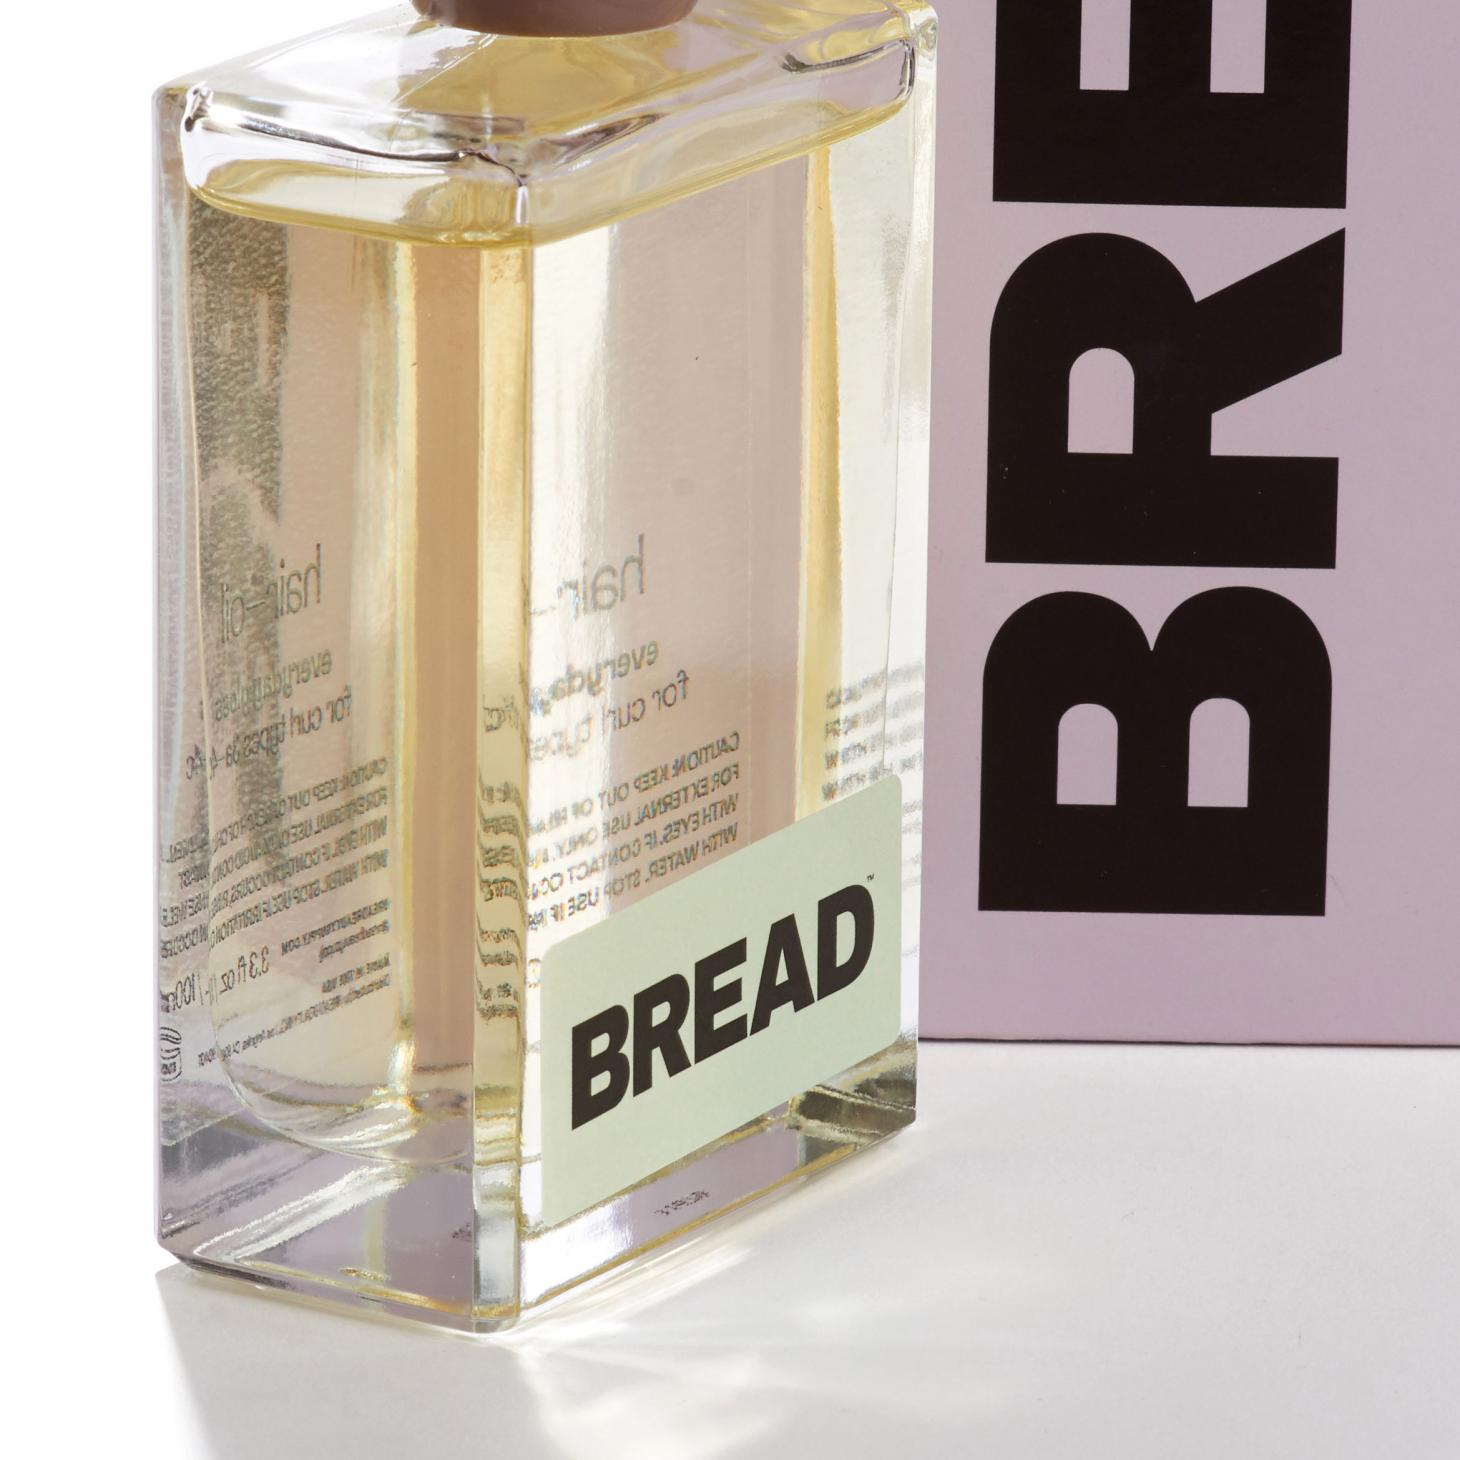 bread hair care in glass bottle with light green label